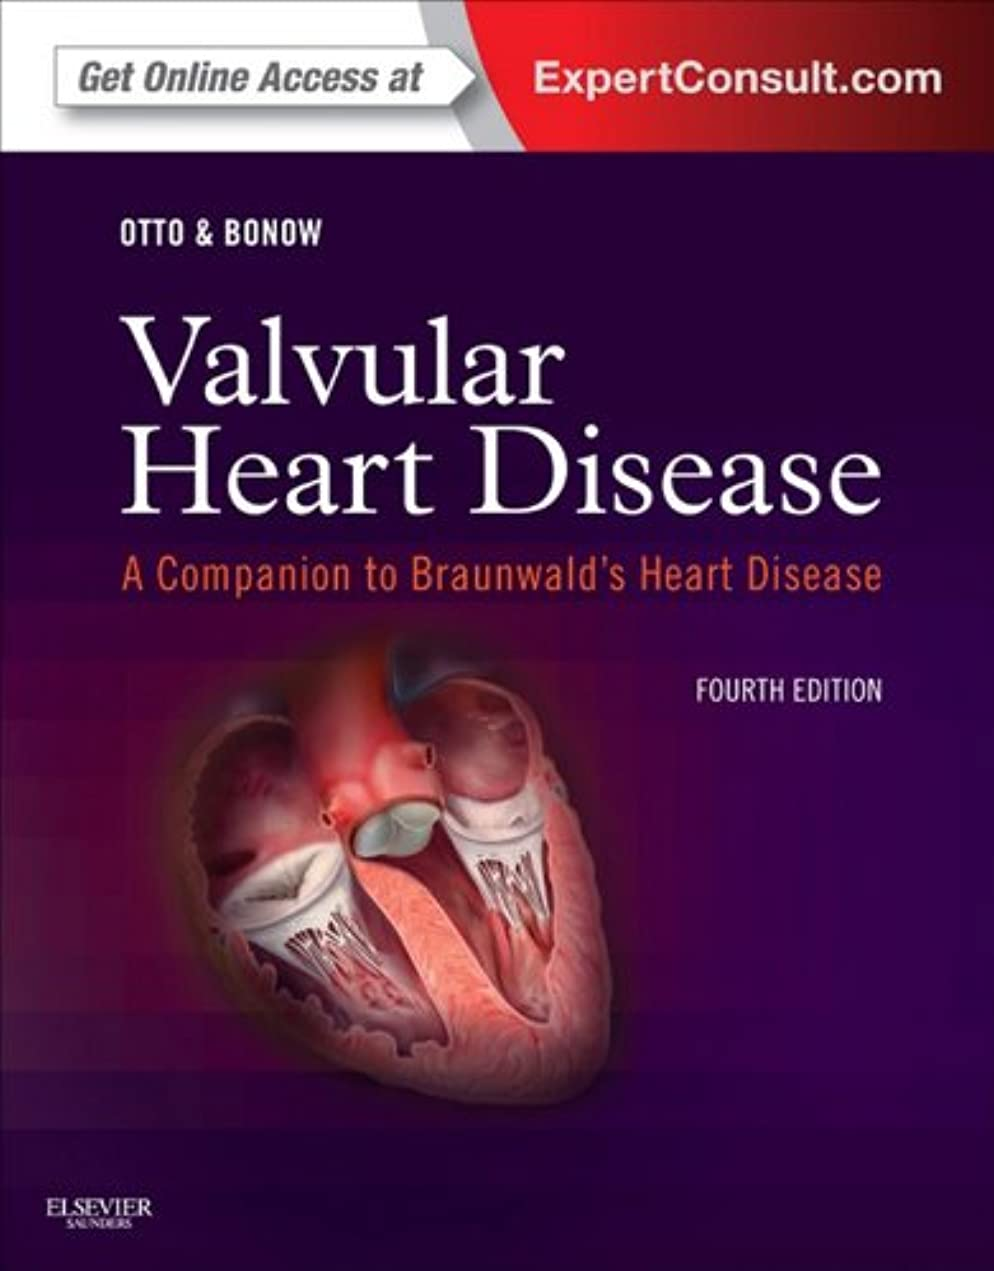 間カスタム群集Valvular Heart Disease: A Companion to Braunwald's Heart Disease E-Book: Expert Consult - Online and Print (English Edition)